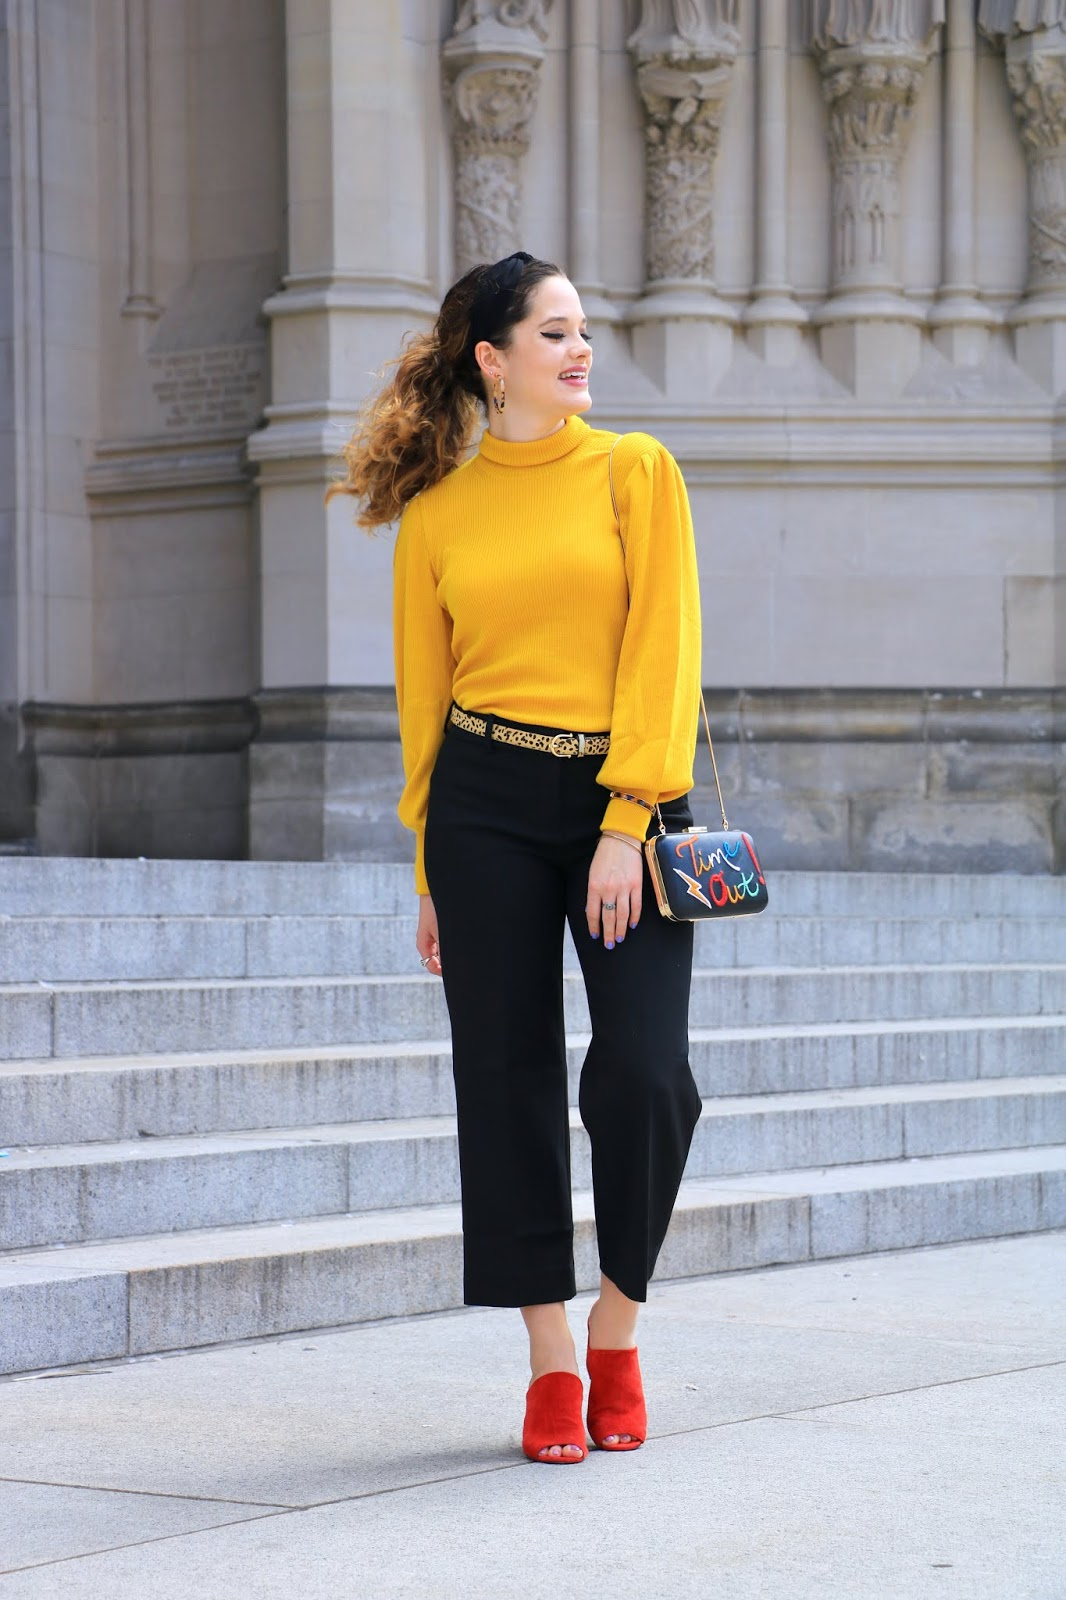 Nyc fashion blogger Kathleen Harper wearing wide-leg pants